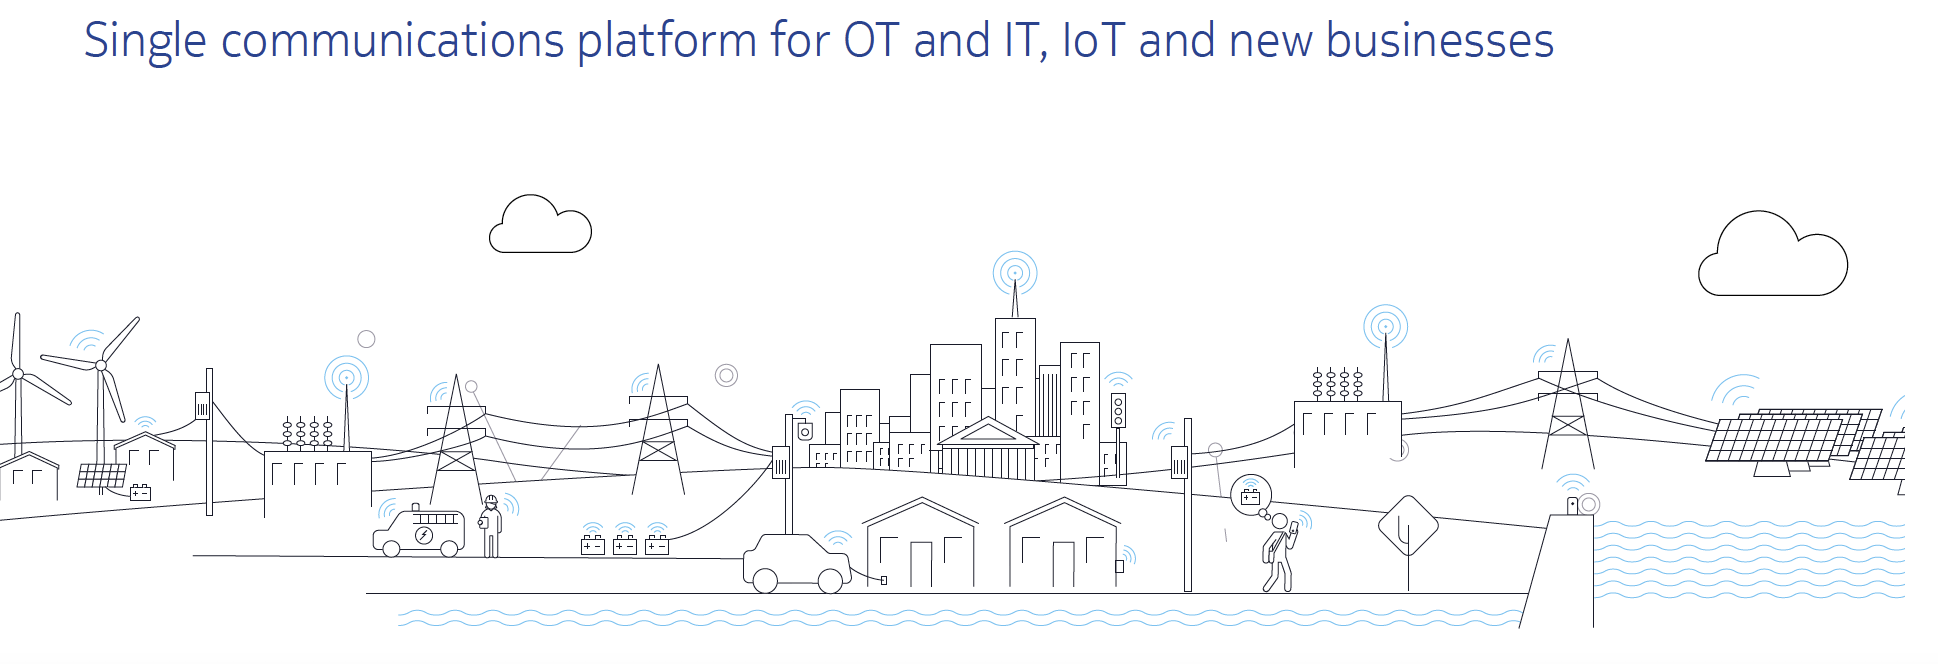 Utilities: Control and optimize smart grids with ultra-reliable pervasive connectivity